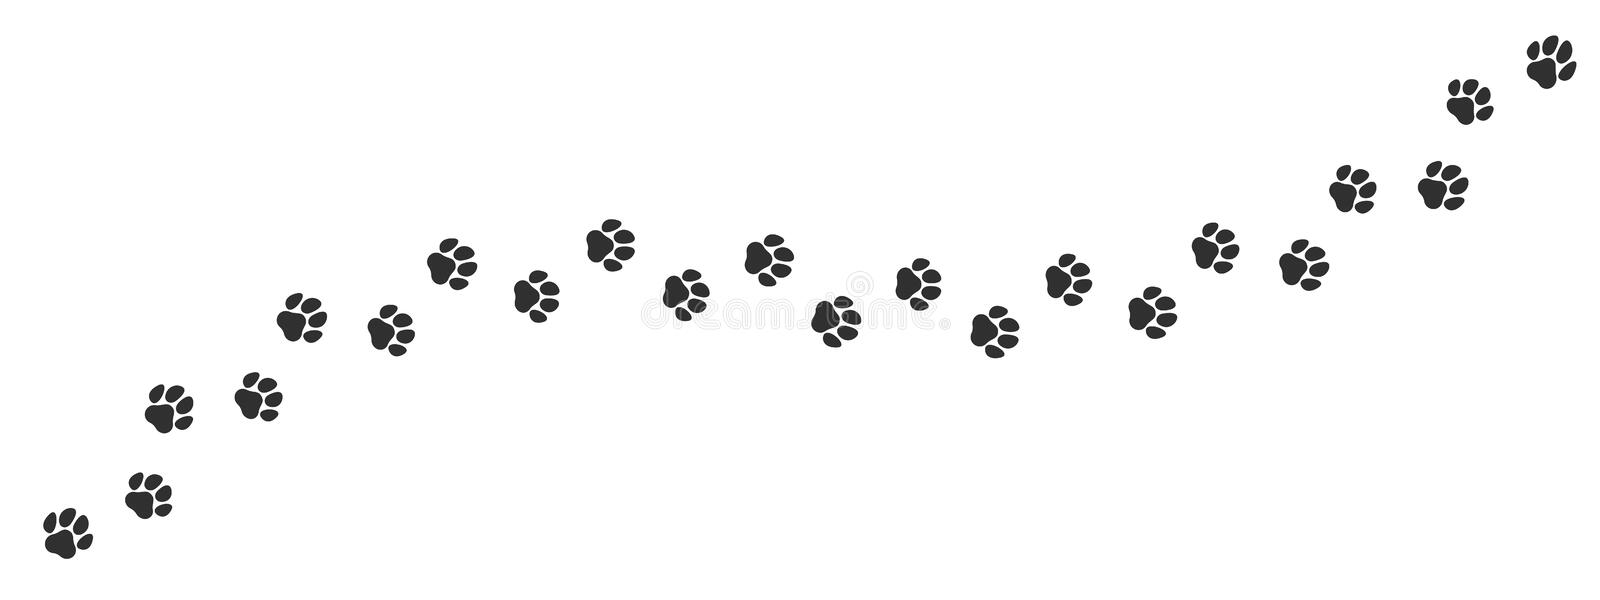 Paw print trail on white background. Vector cat or dog, pawprint walk line path pattern. Background stock illustration